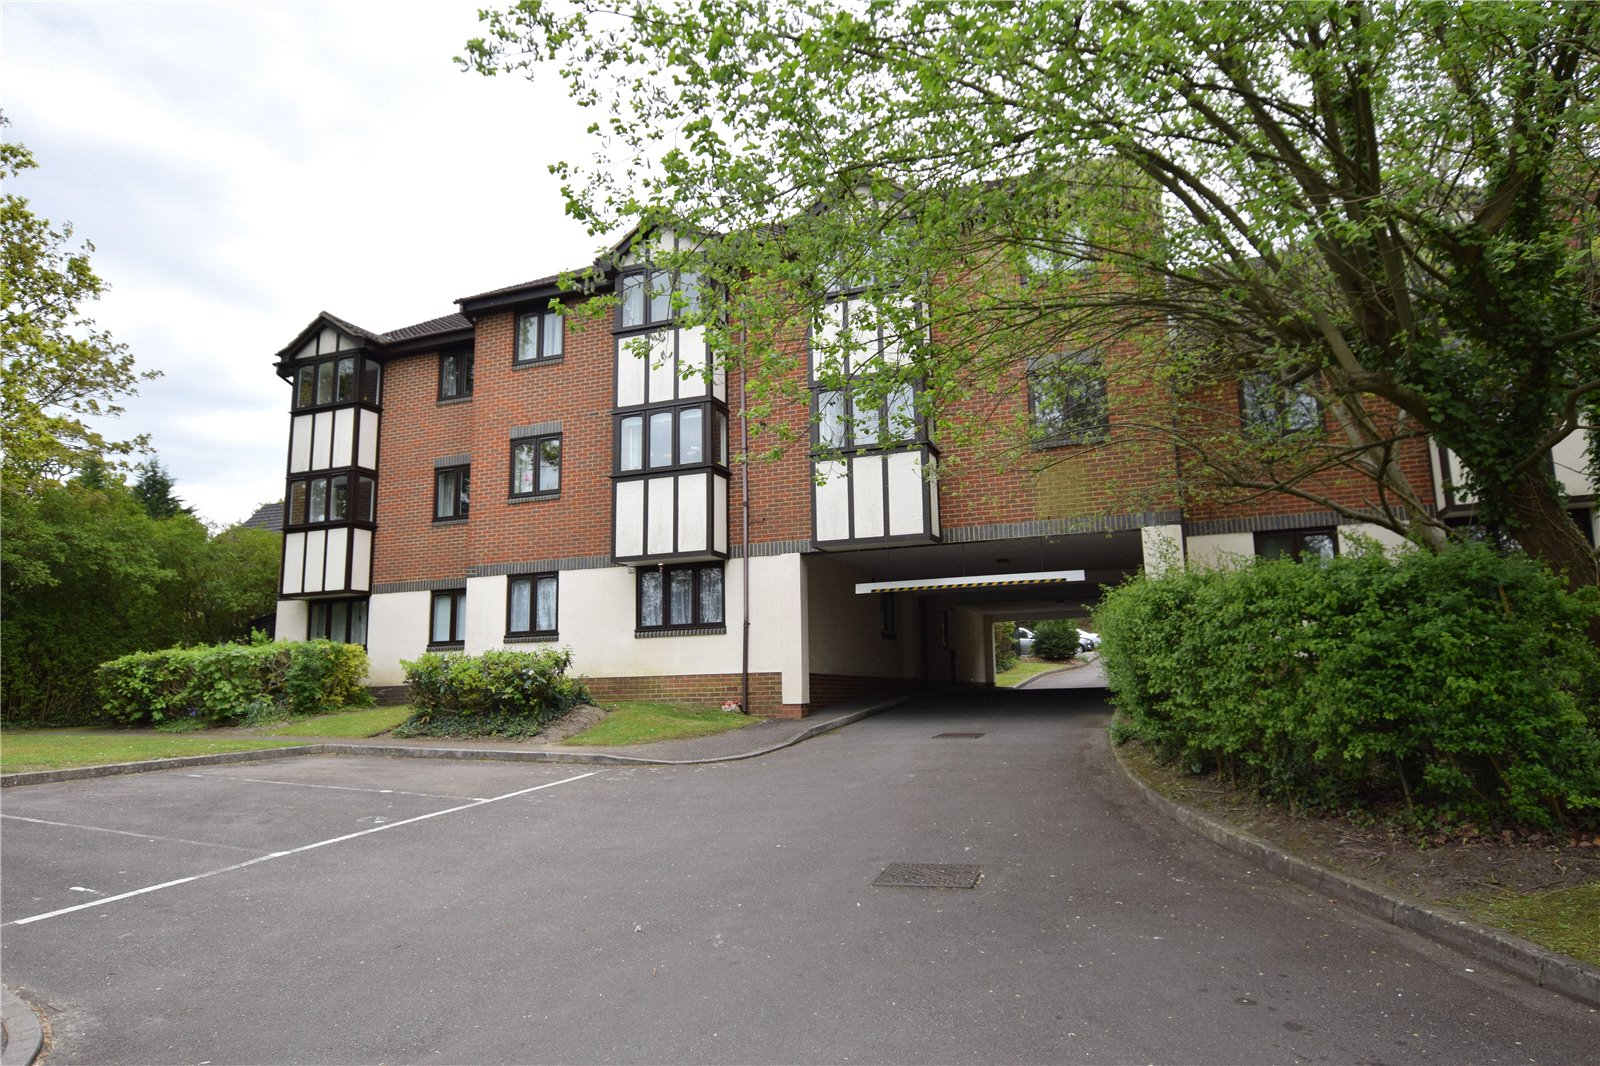 1 Bedroom Apartment Flat for sale in Woodpeckers, 9 Crowthorne Road, Bracknell, Berkshire, RG12